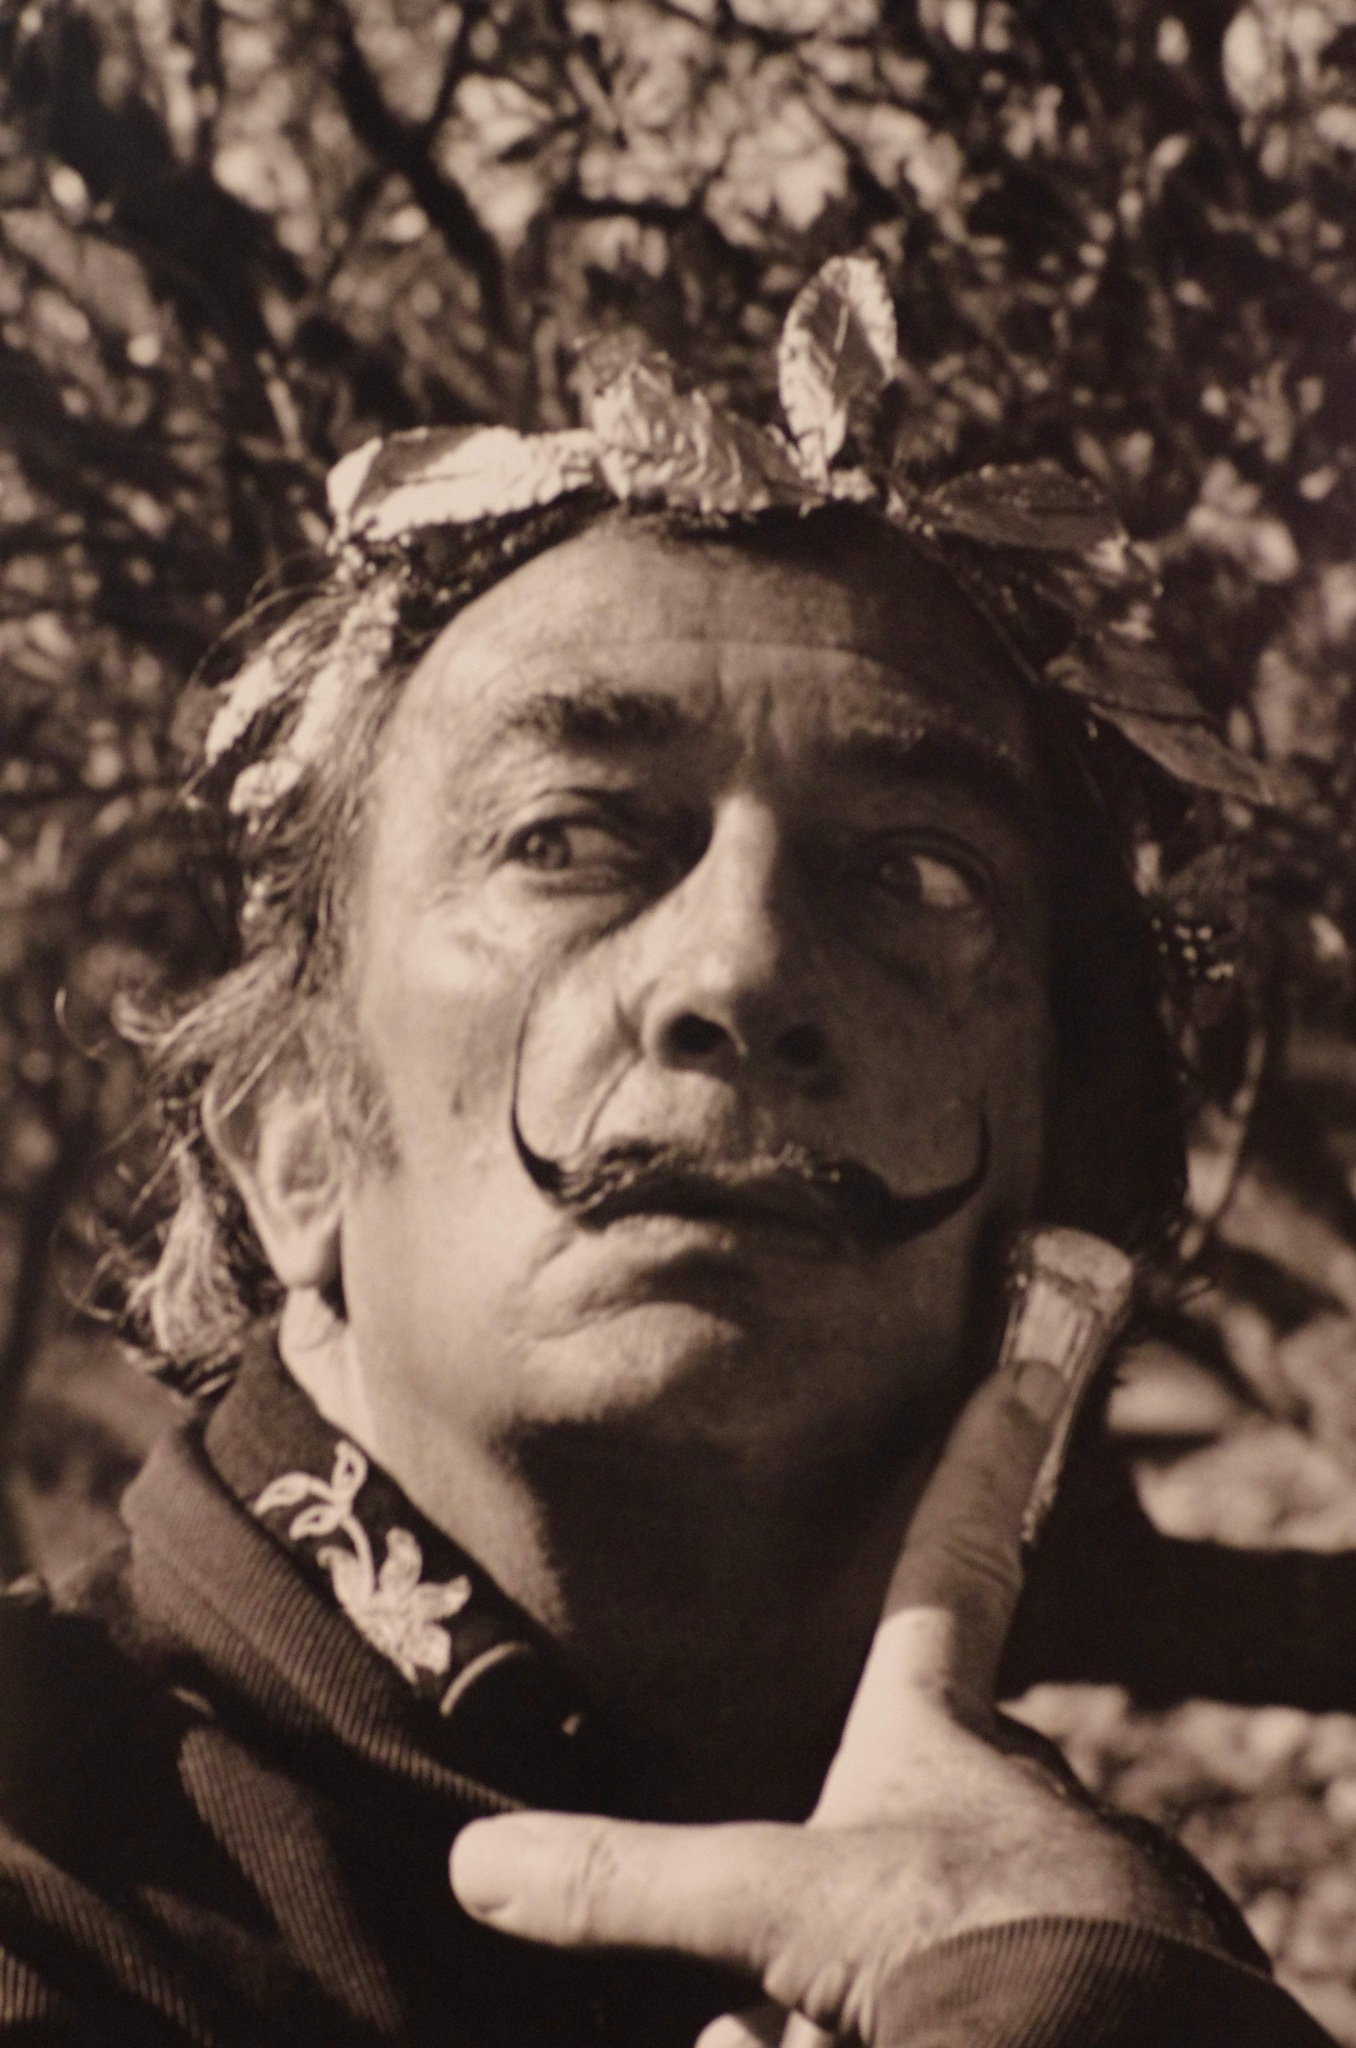 Mr. Dali-Paris by EdwardStern